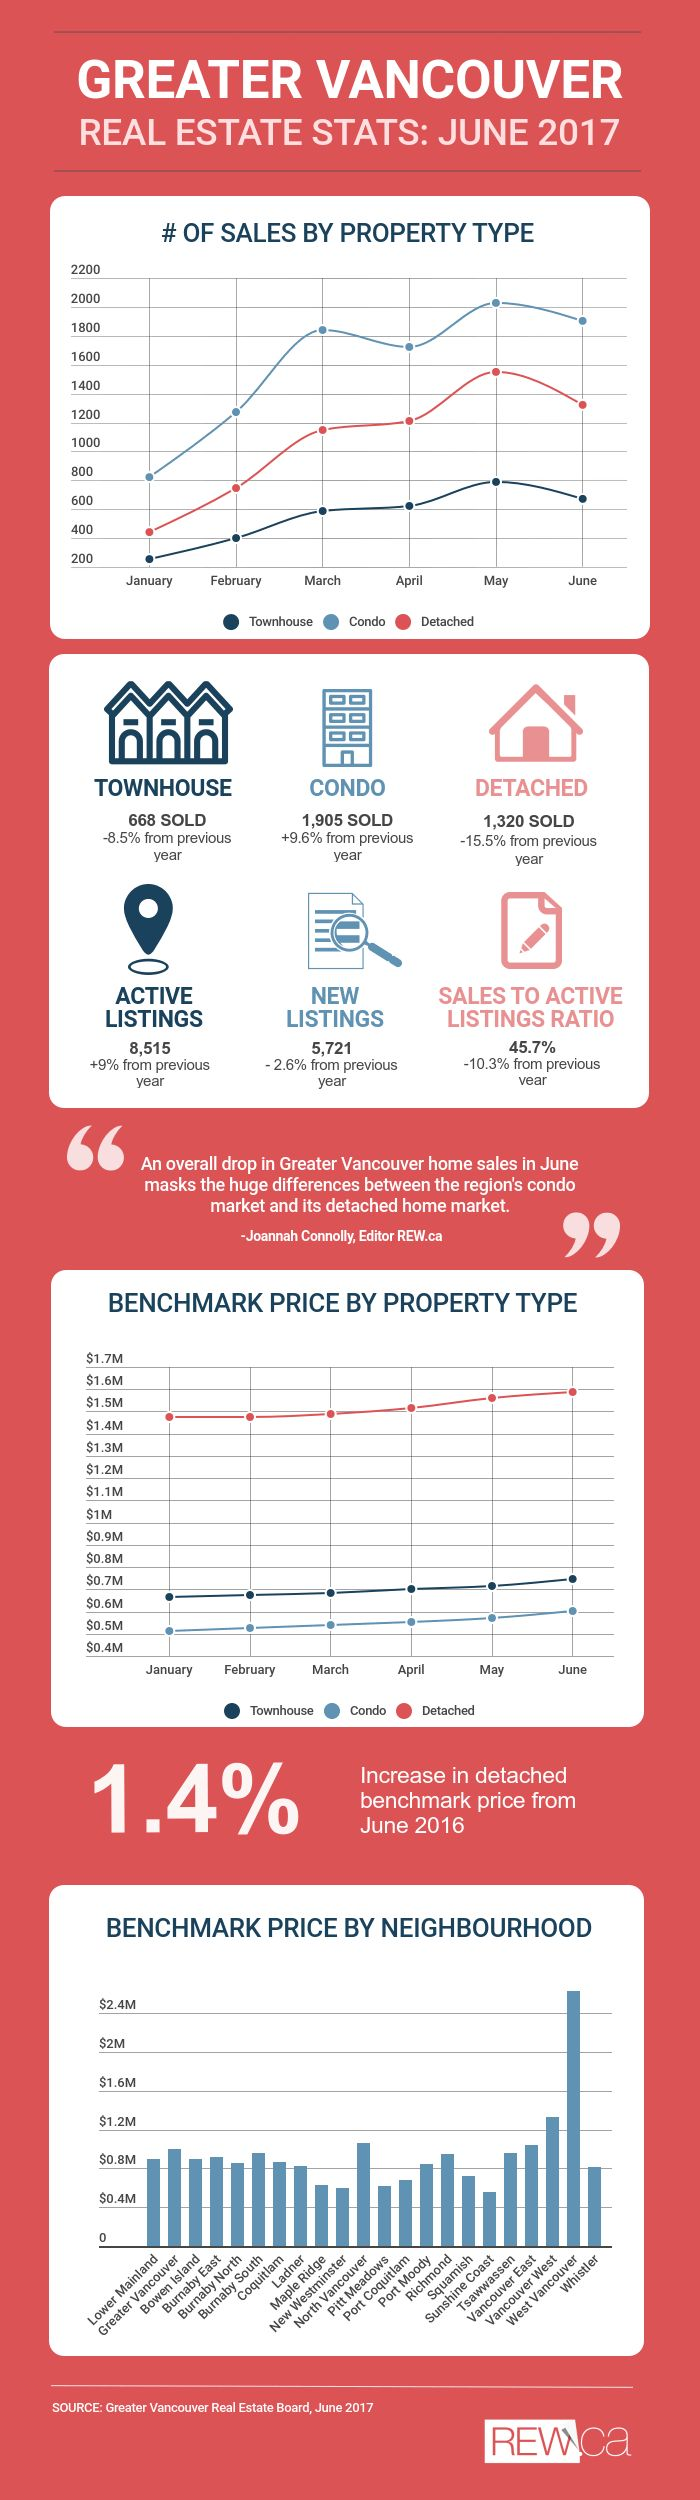 Greater Vancouver Real Estate Board Stats June 2017 | REW.ca